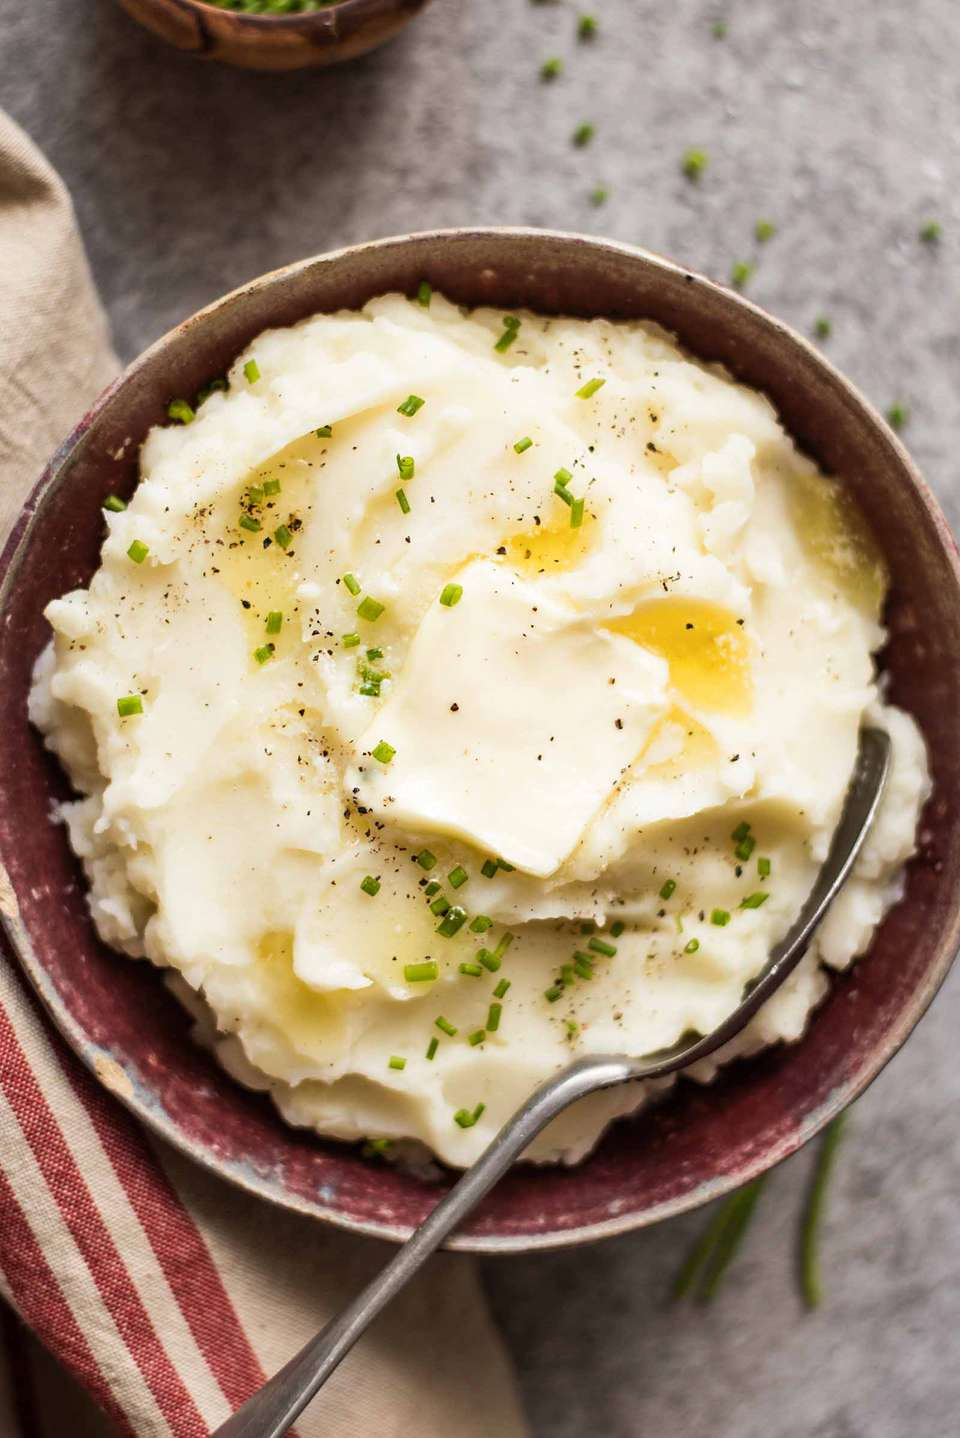 Crockpot Mashed Potatoes Recipe potatoes in a bowl with butter and chives and a spoon in it